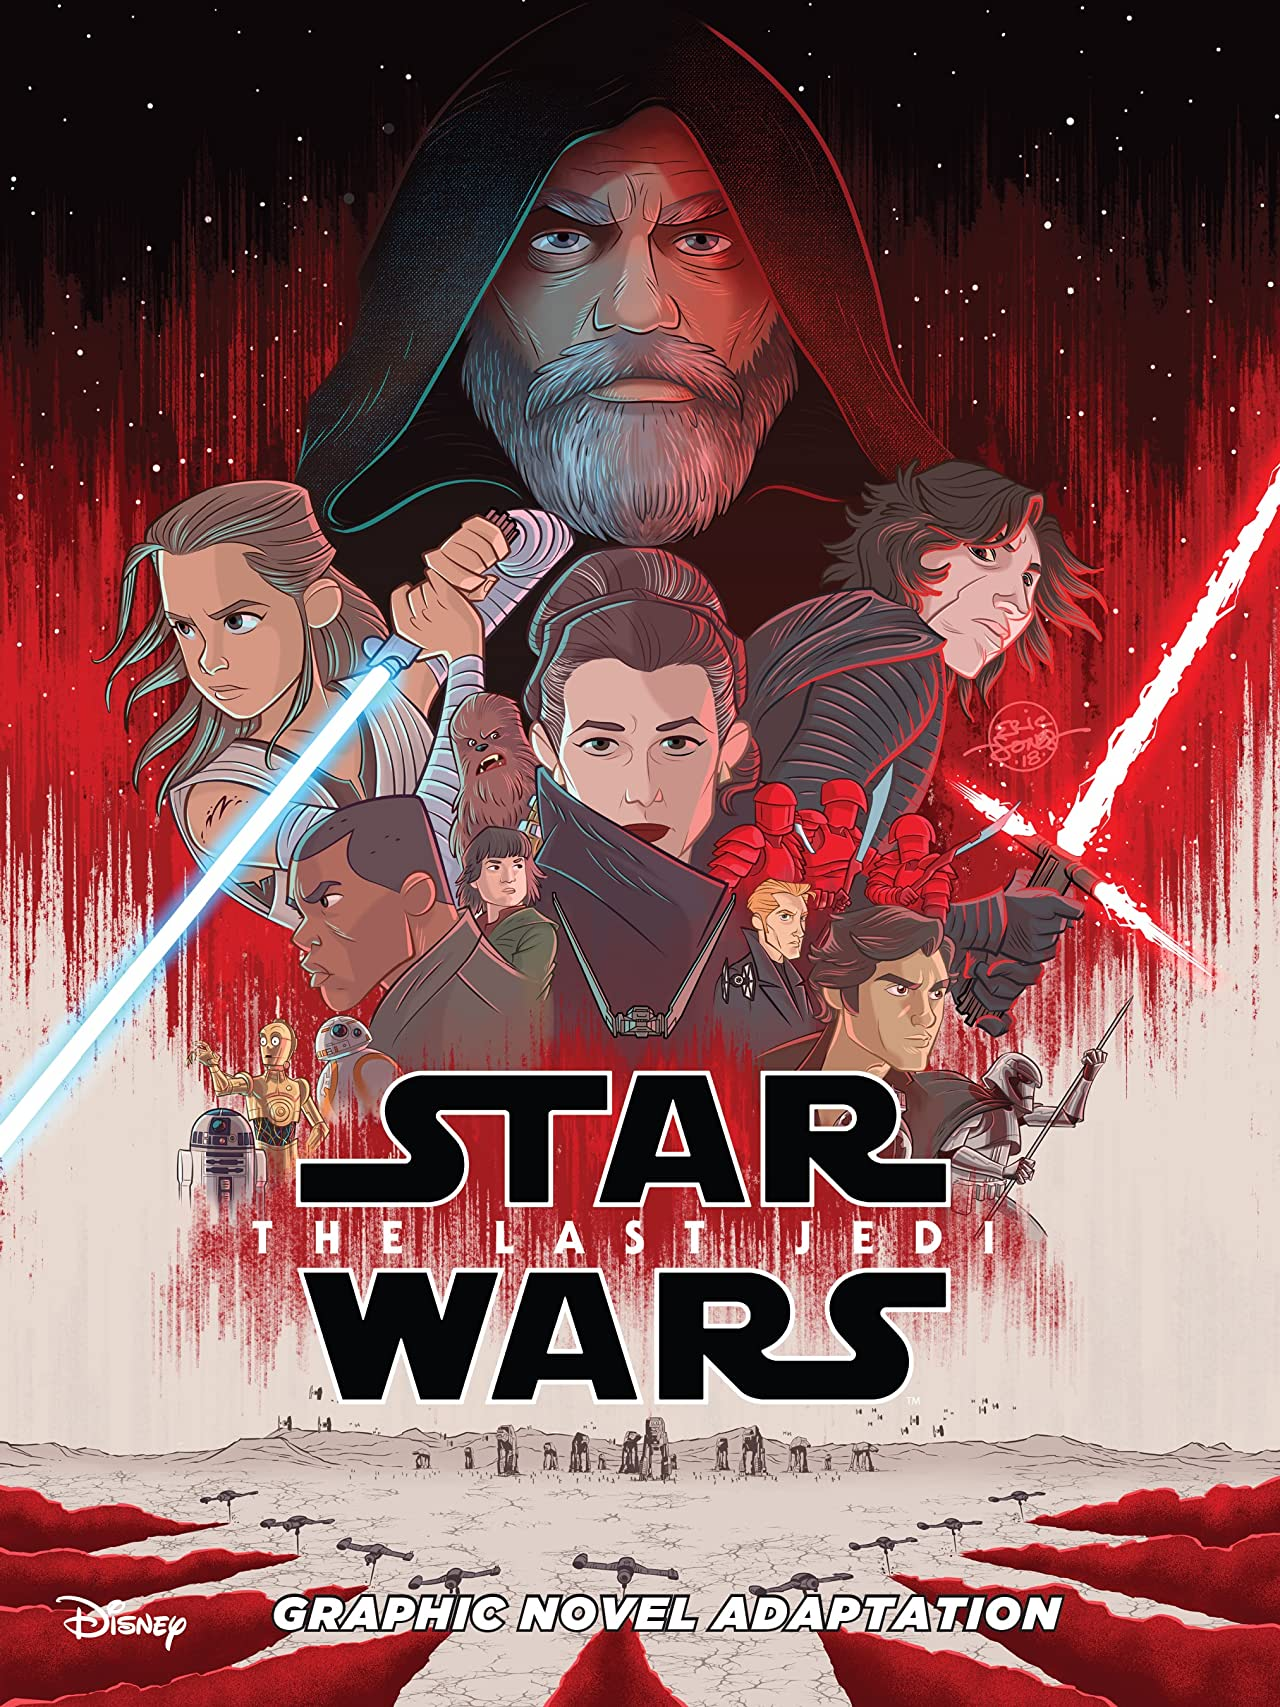 Star Wars: The Last Jedi Graphic Novel Adaptation